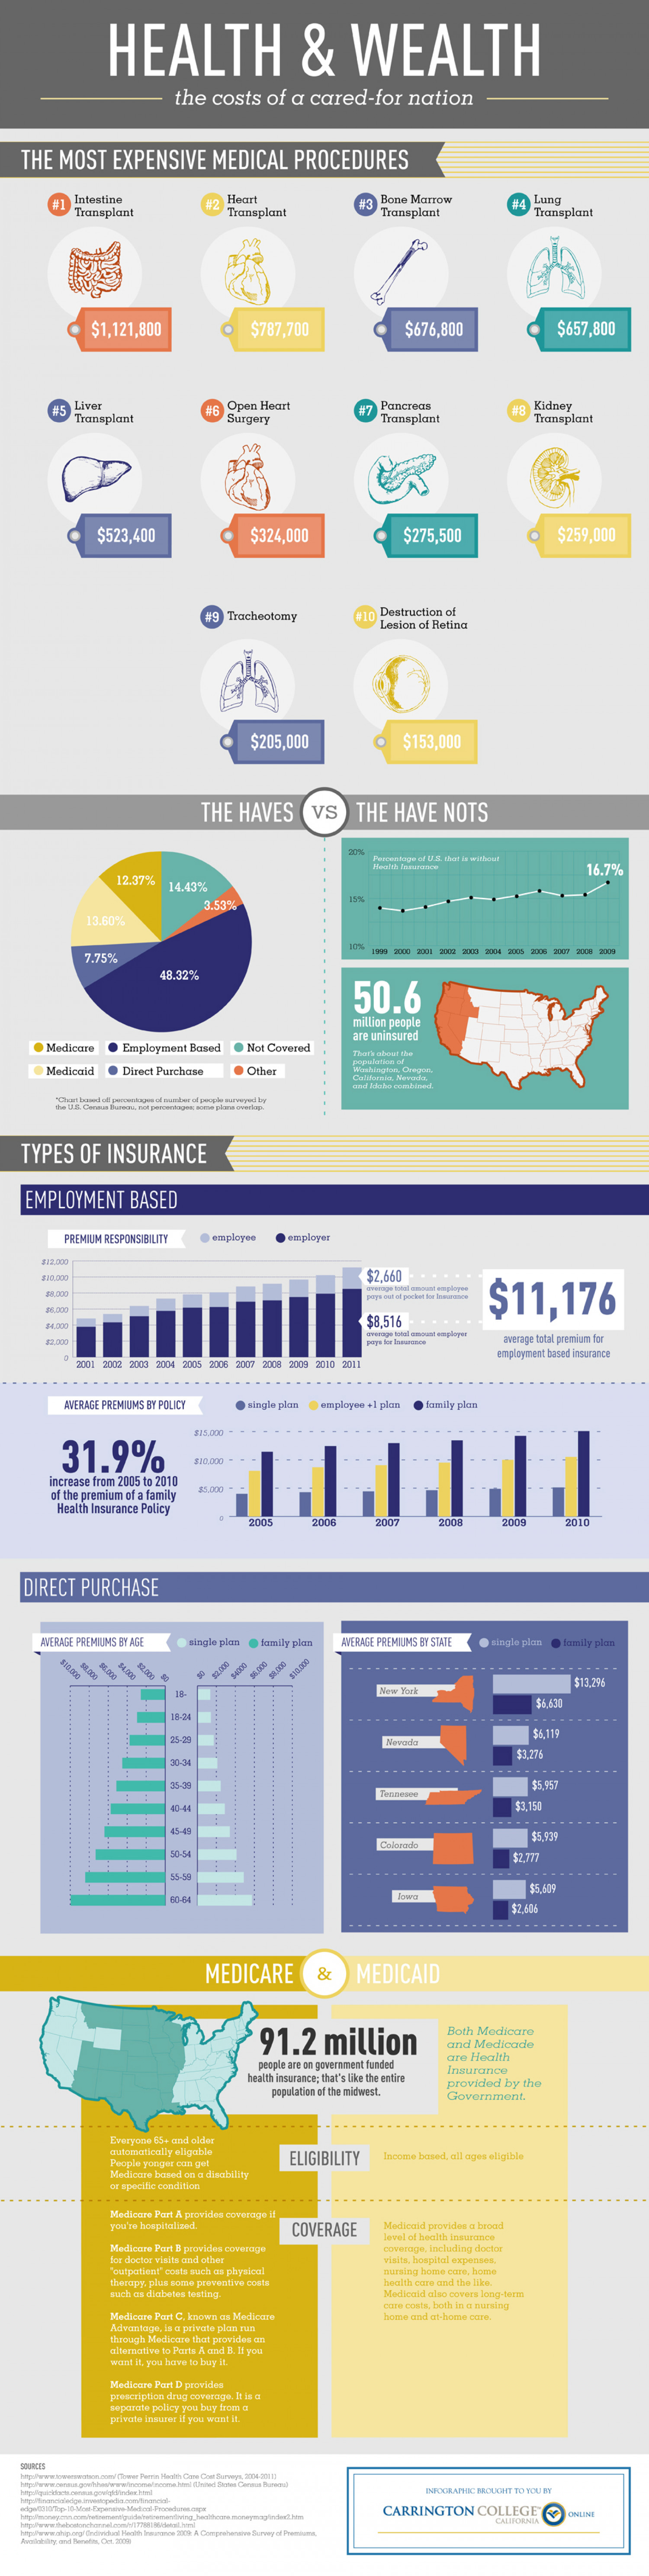 Health and Wealth: The Cost of a Cared-For Nation Infographic